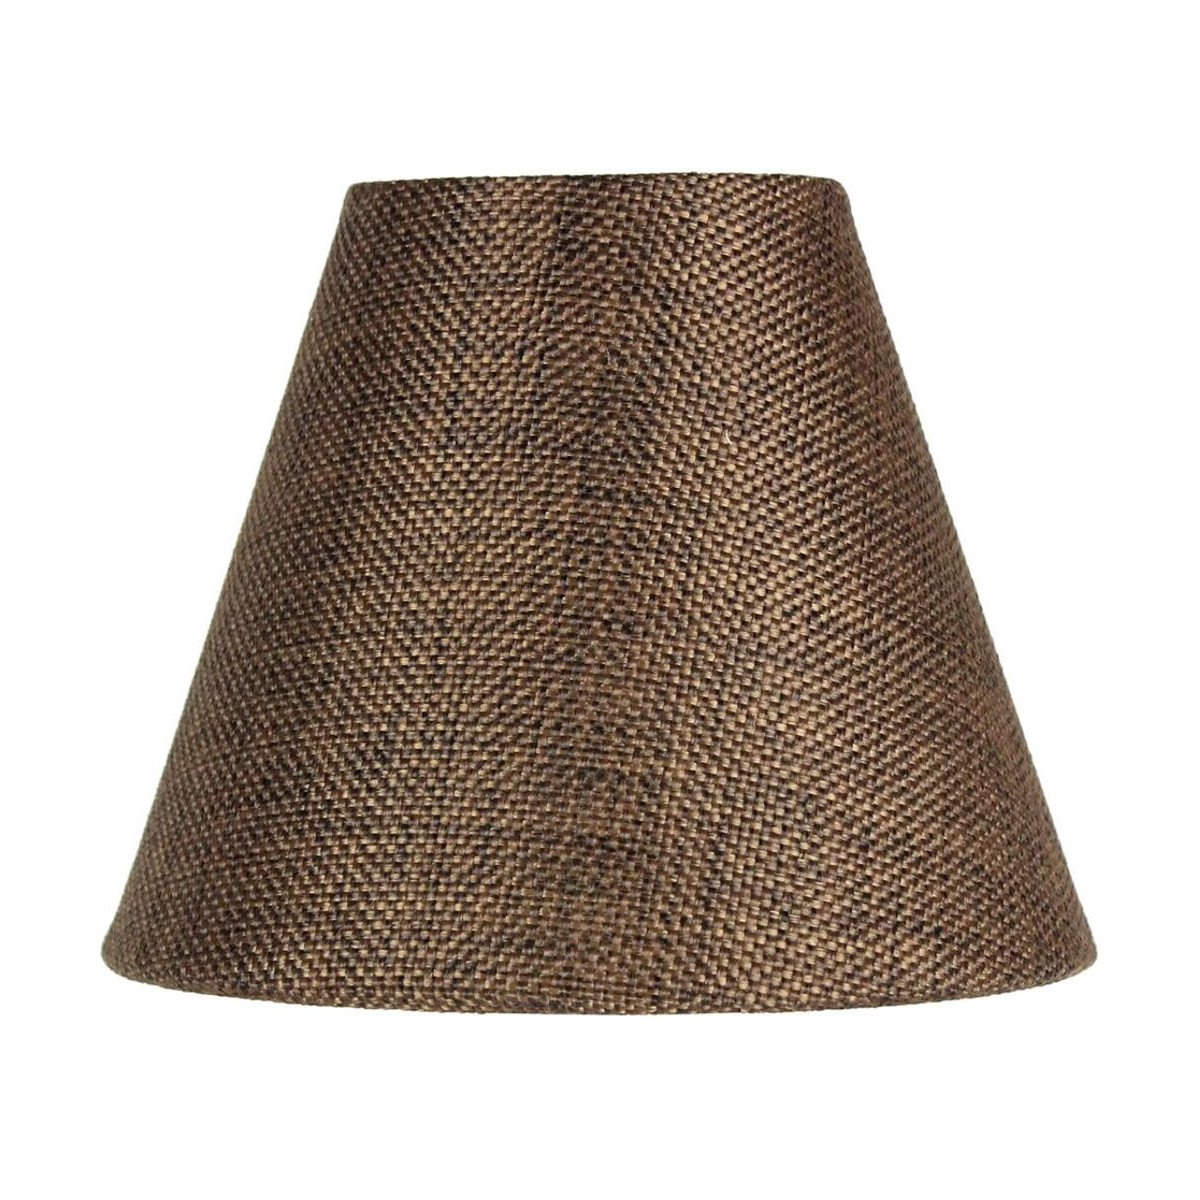 3x6x5 Chocolate Burlap Chandelier Lampshade By Home Concept - Perfect for chandeliers, foyer lights, and wall sconces -Small, Chocolate